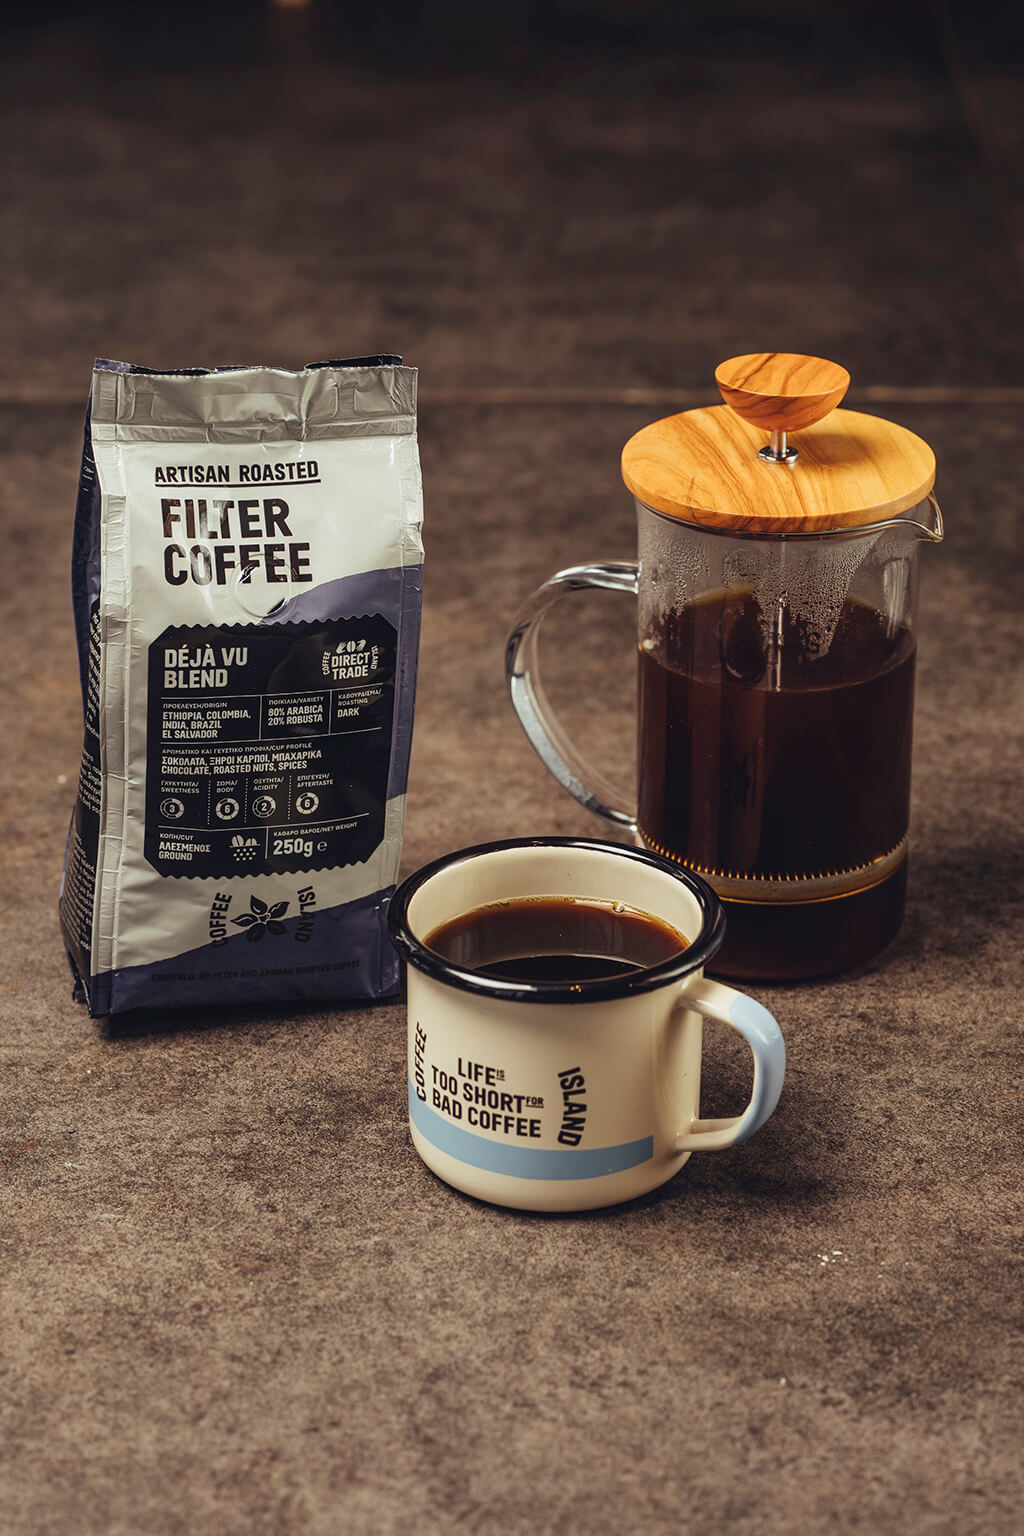 Coffee Island's filter coffee package, coffee press and mug